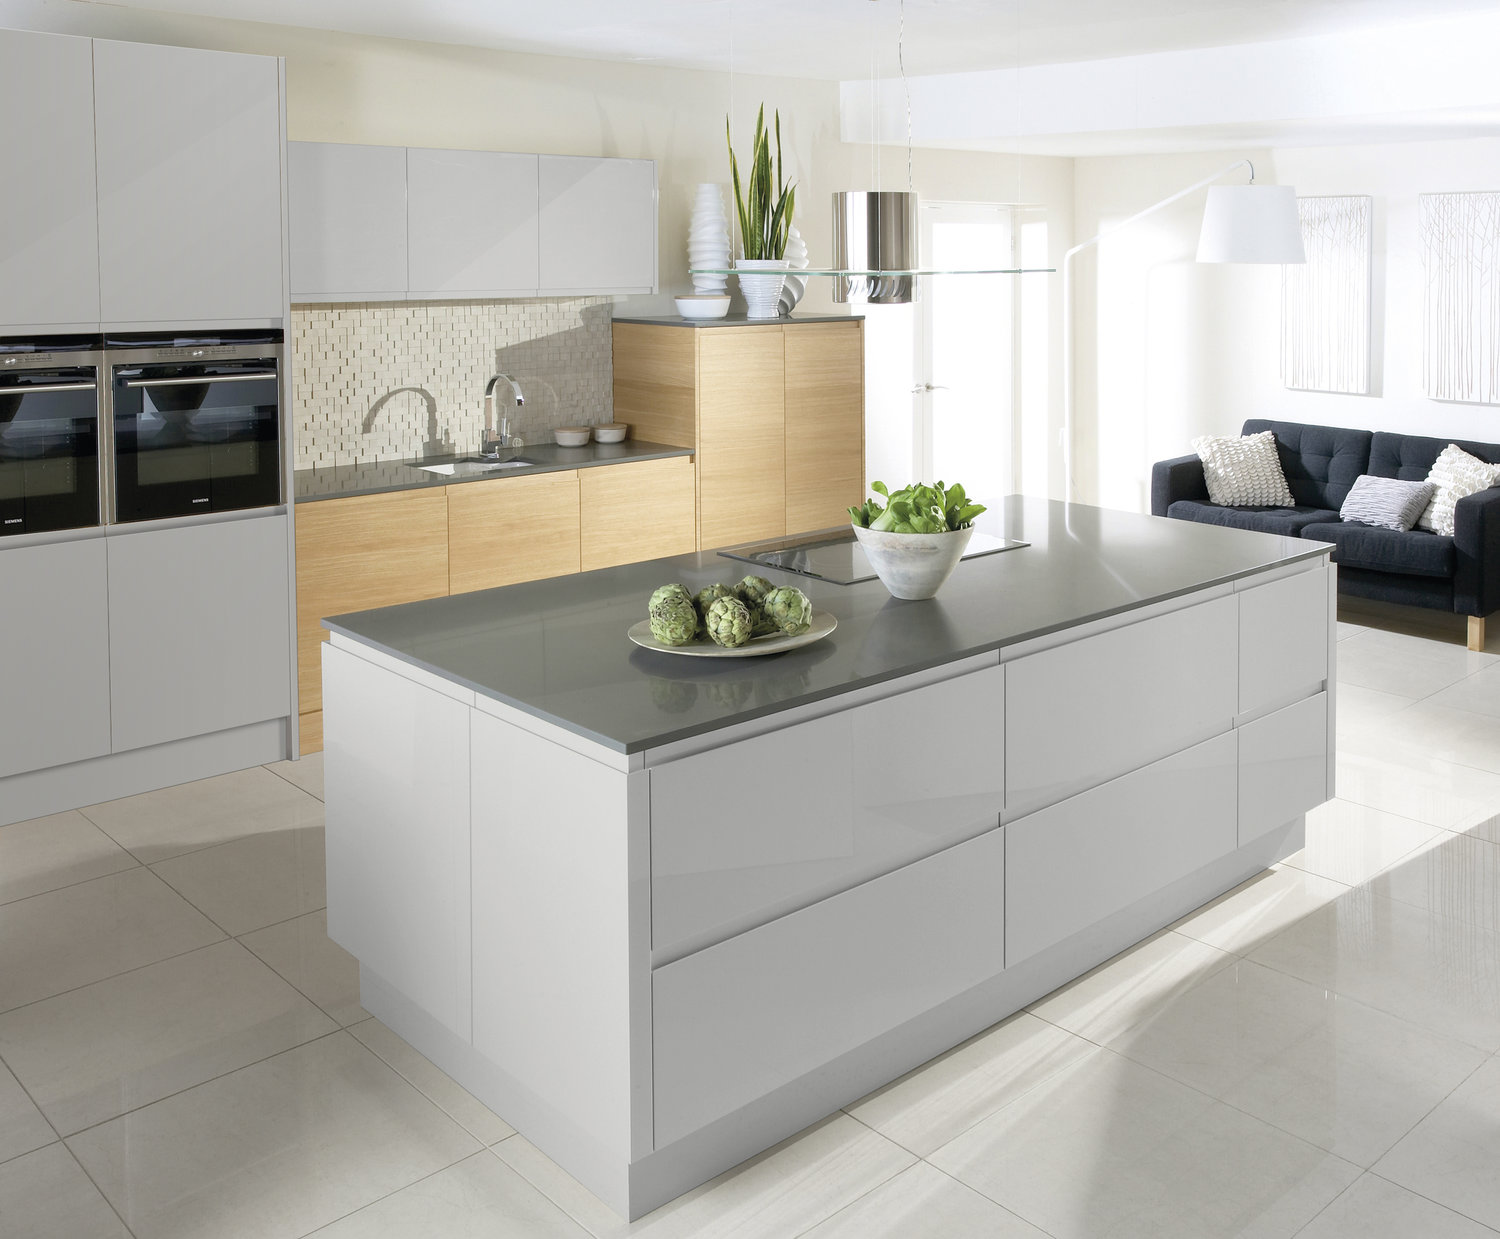 mix woodgrains with gloss or matte finishes to achieve contemporary looks.